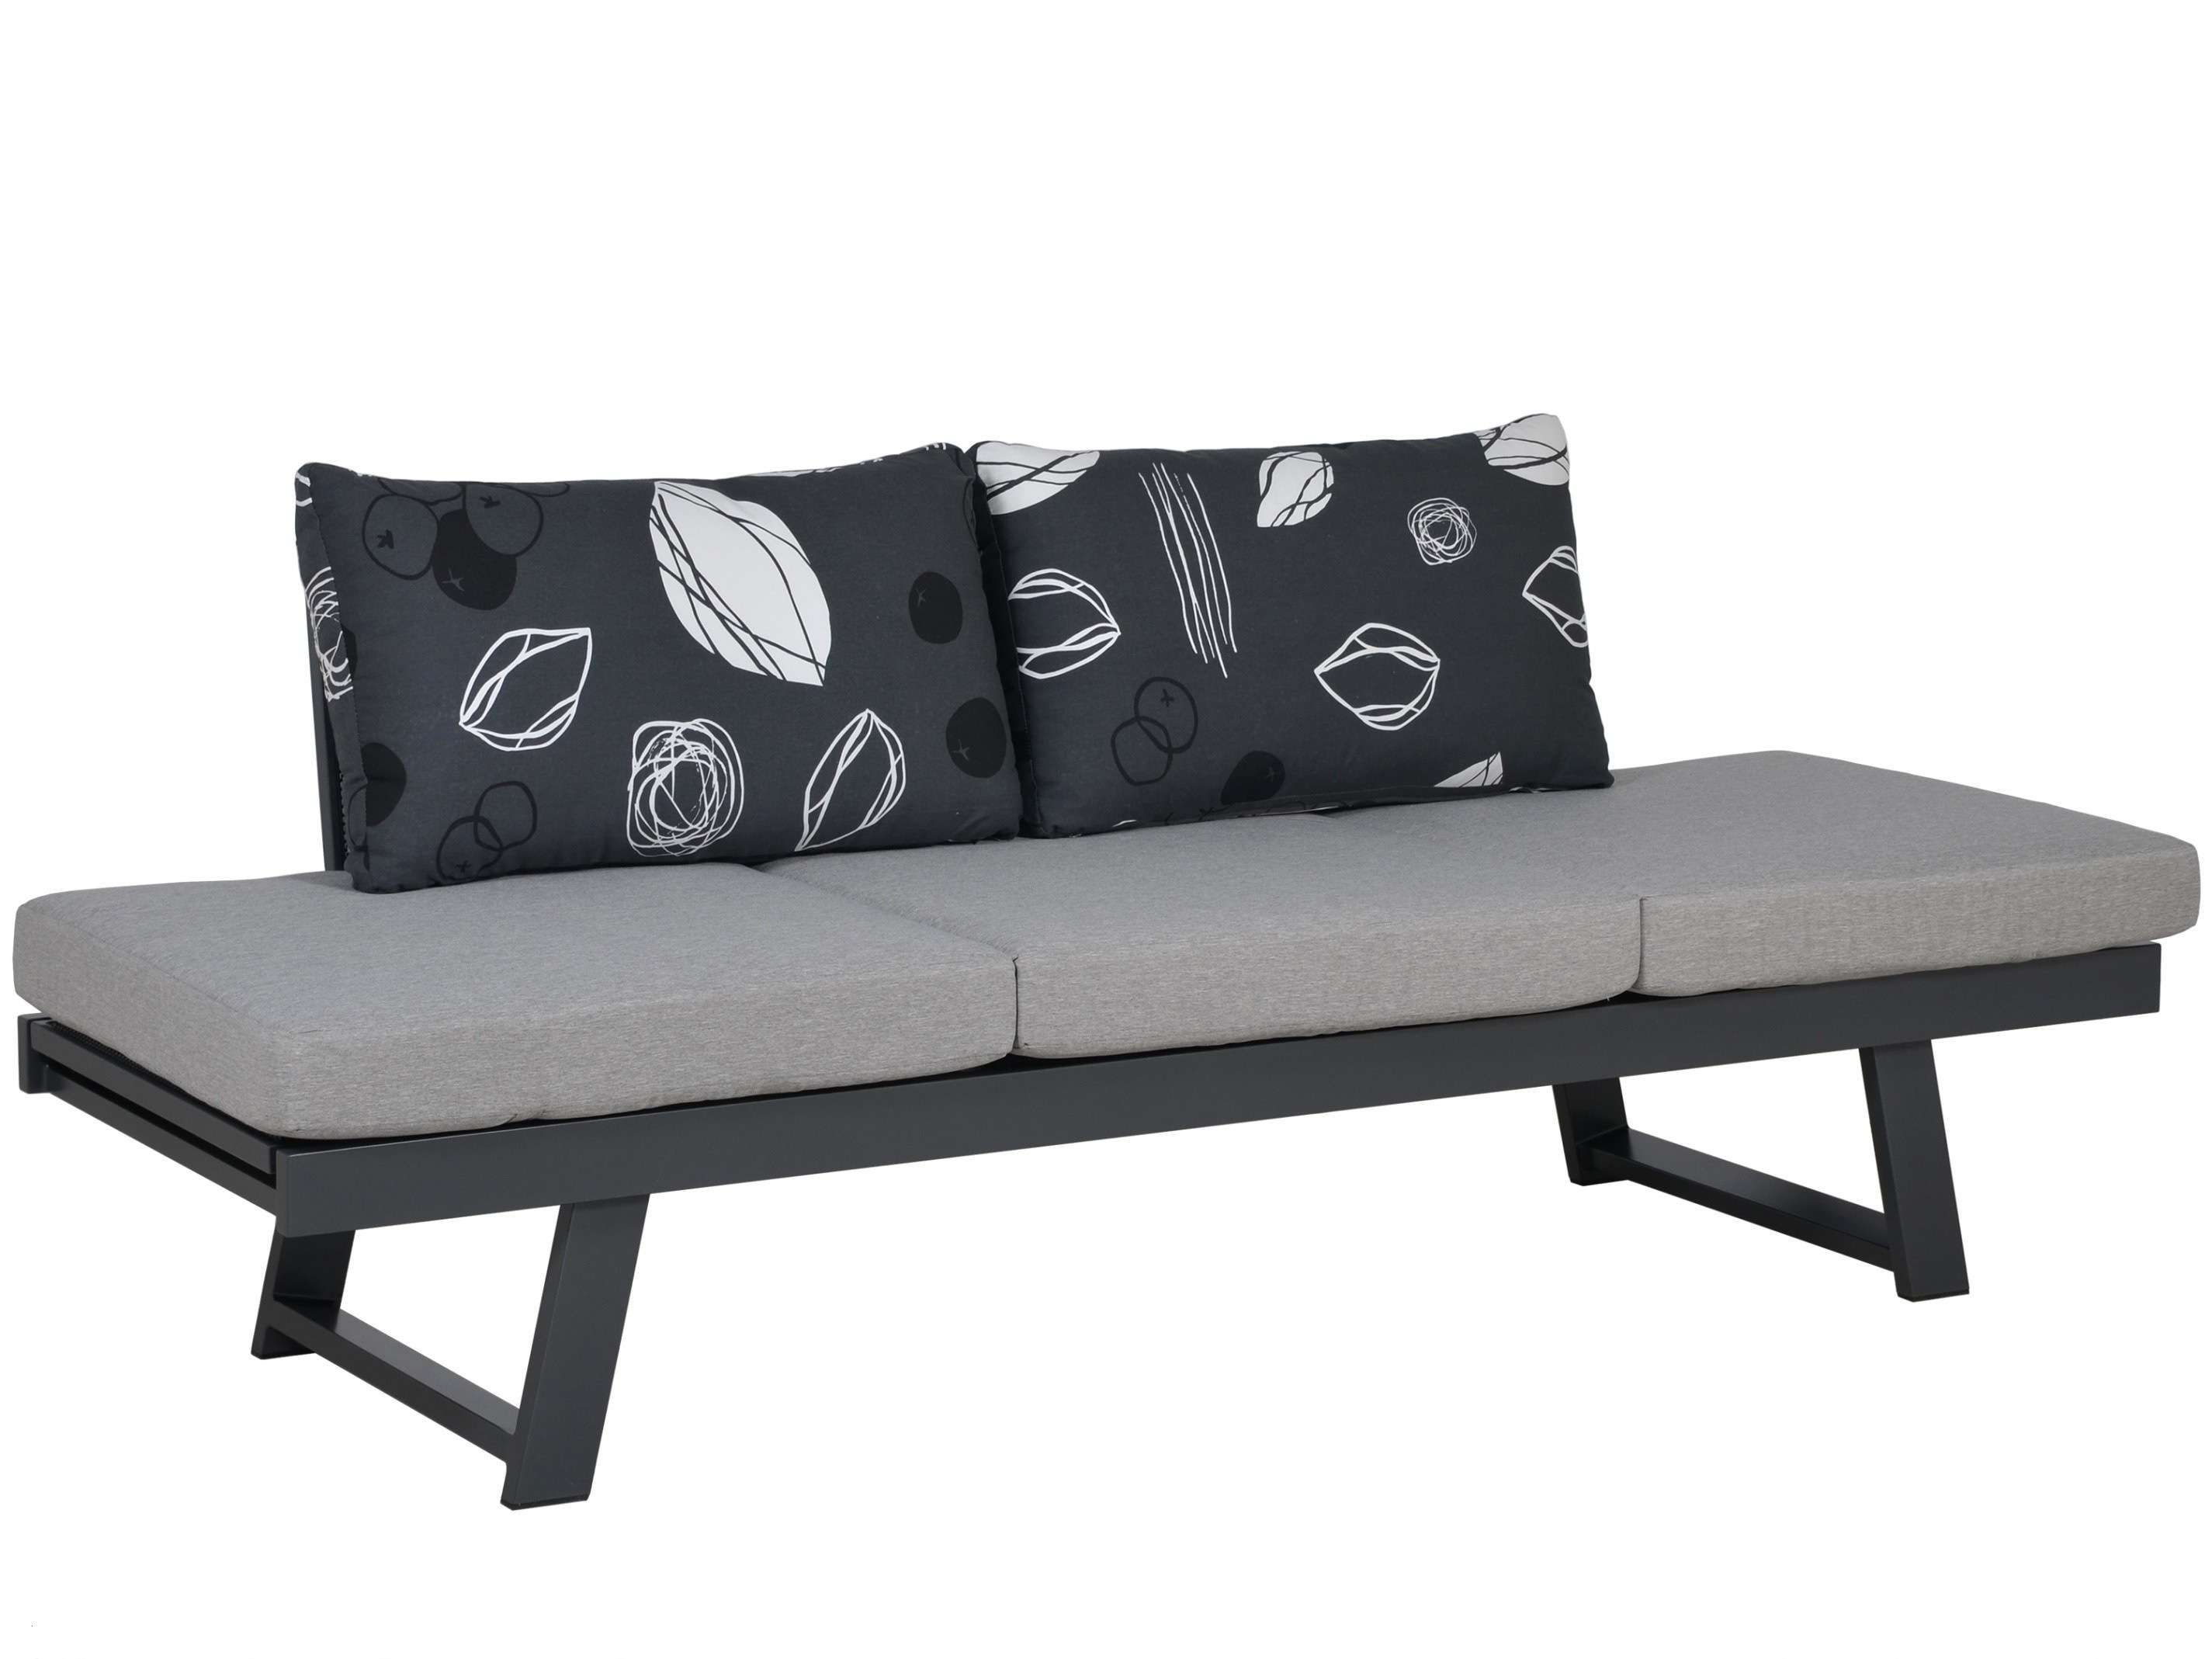 Pin By Putrantosinta On Big Sofa Mit Schlaffunktion Sofa Outdoor Sofa Furniture